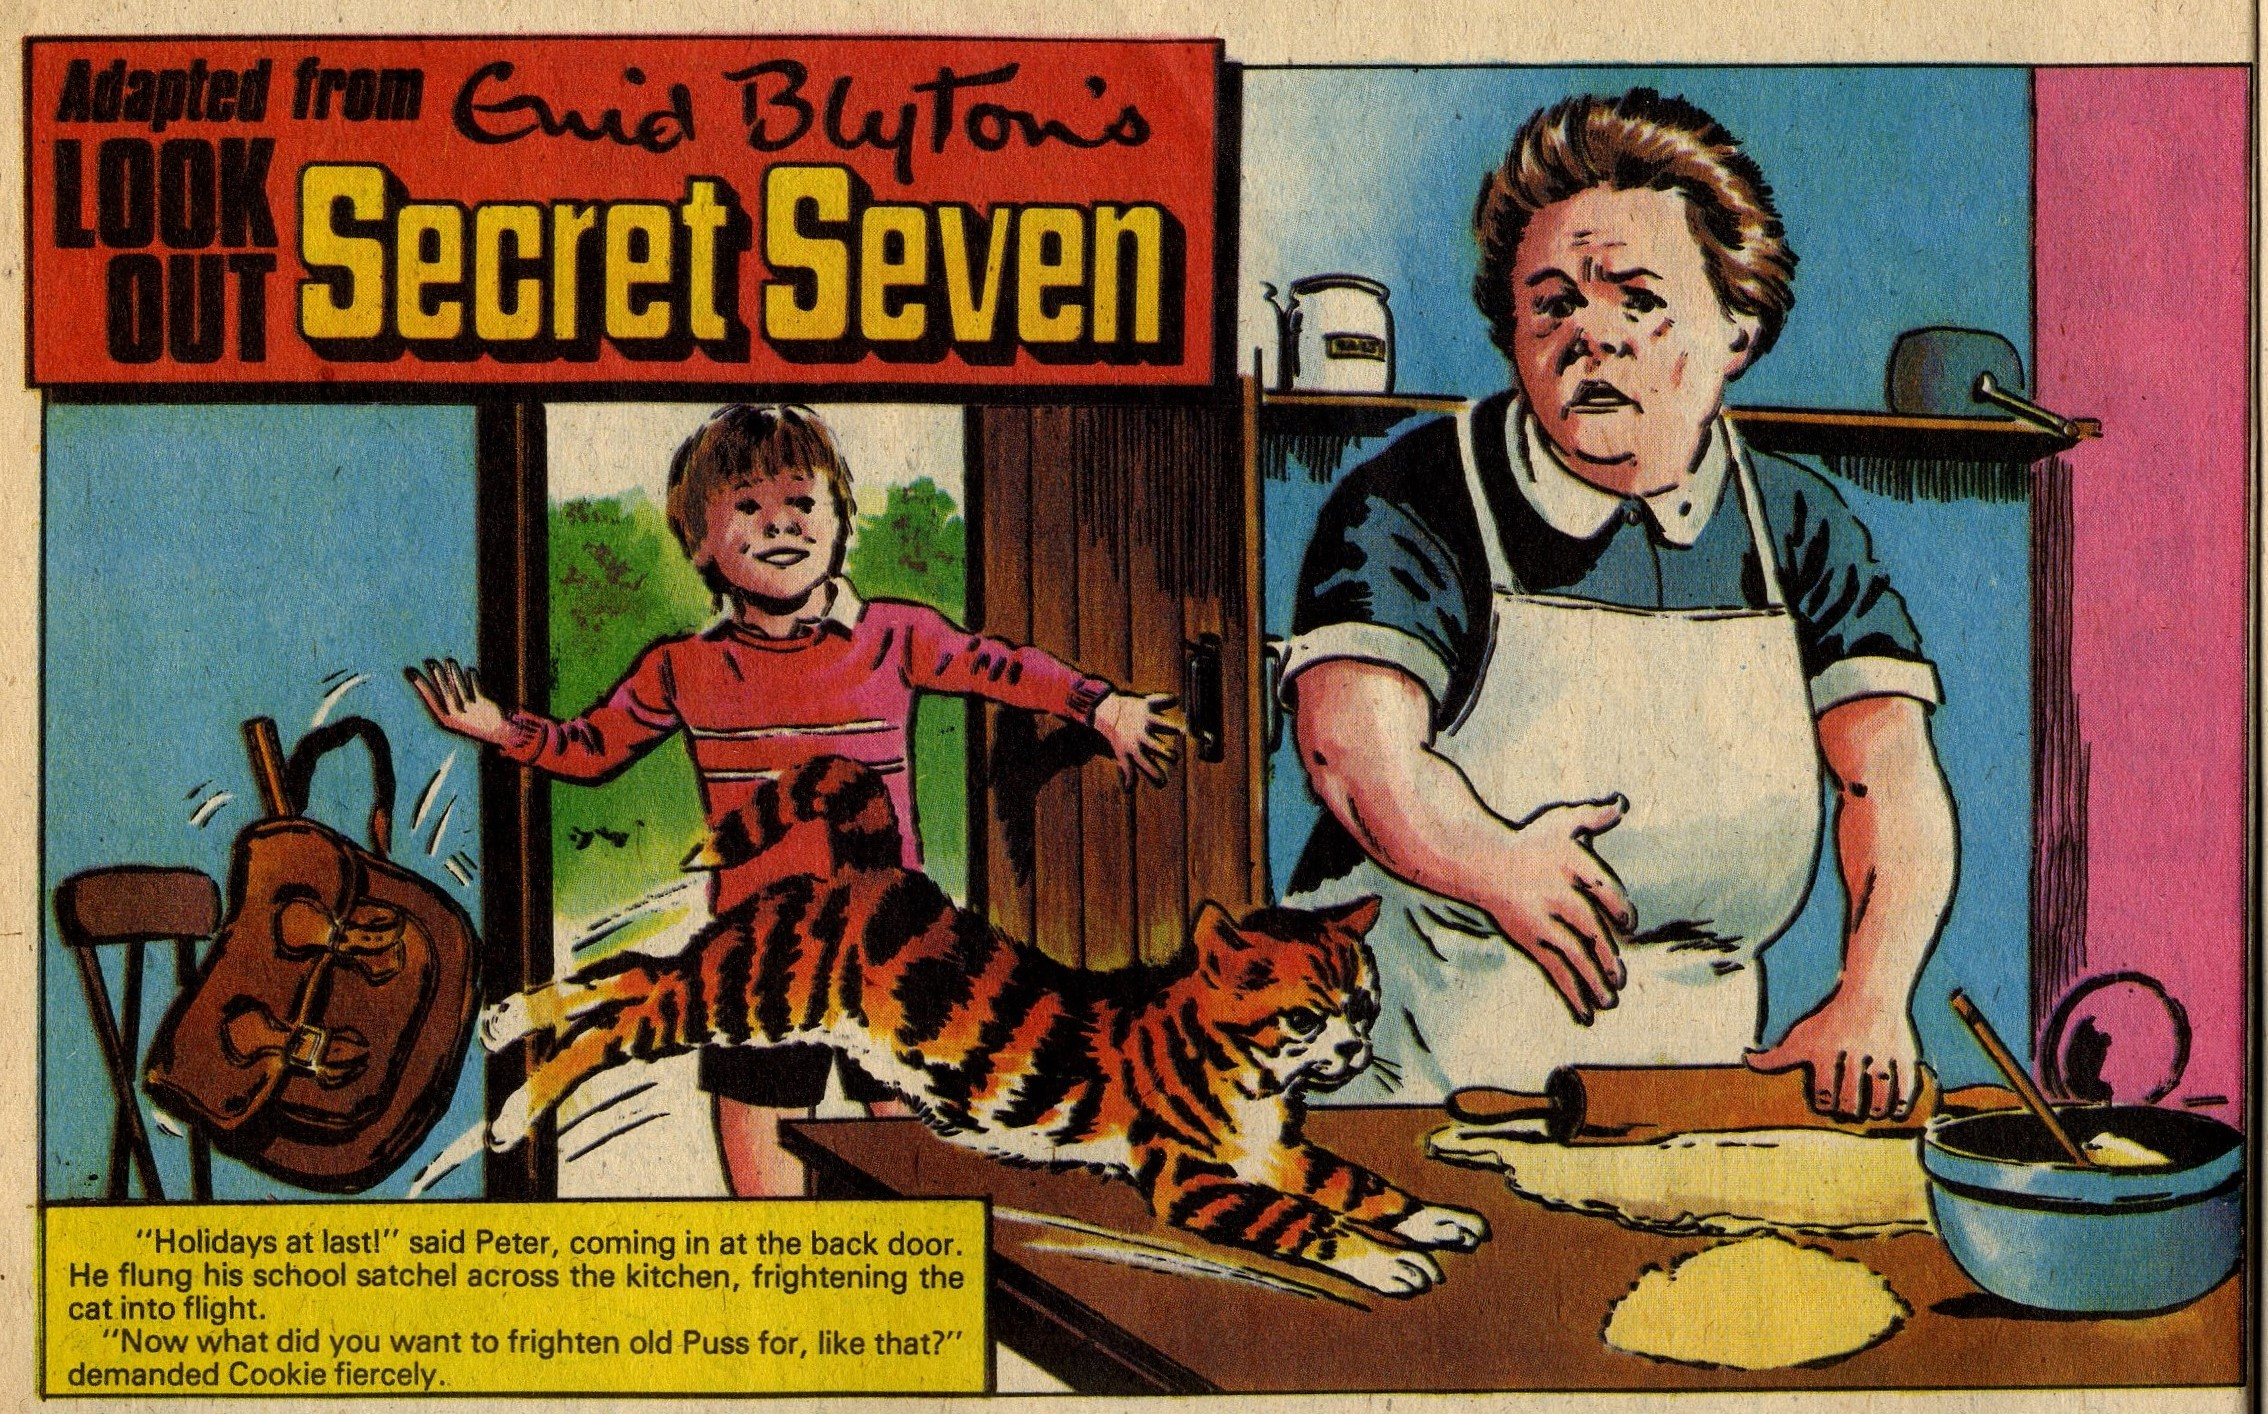 Look Out Secret Seven: John Armstrong (artist), adapted from Enid Blyton